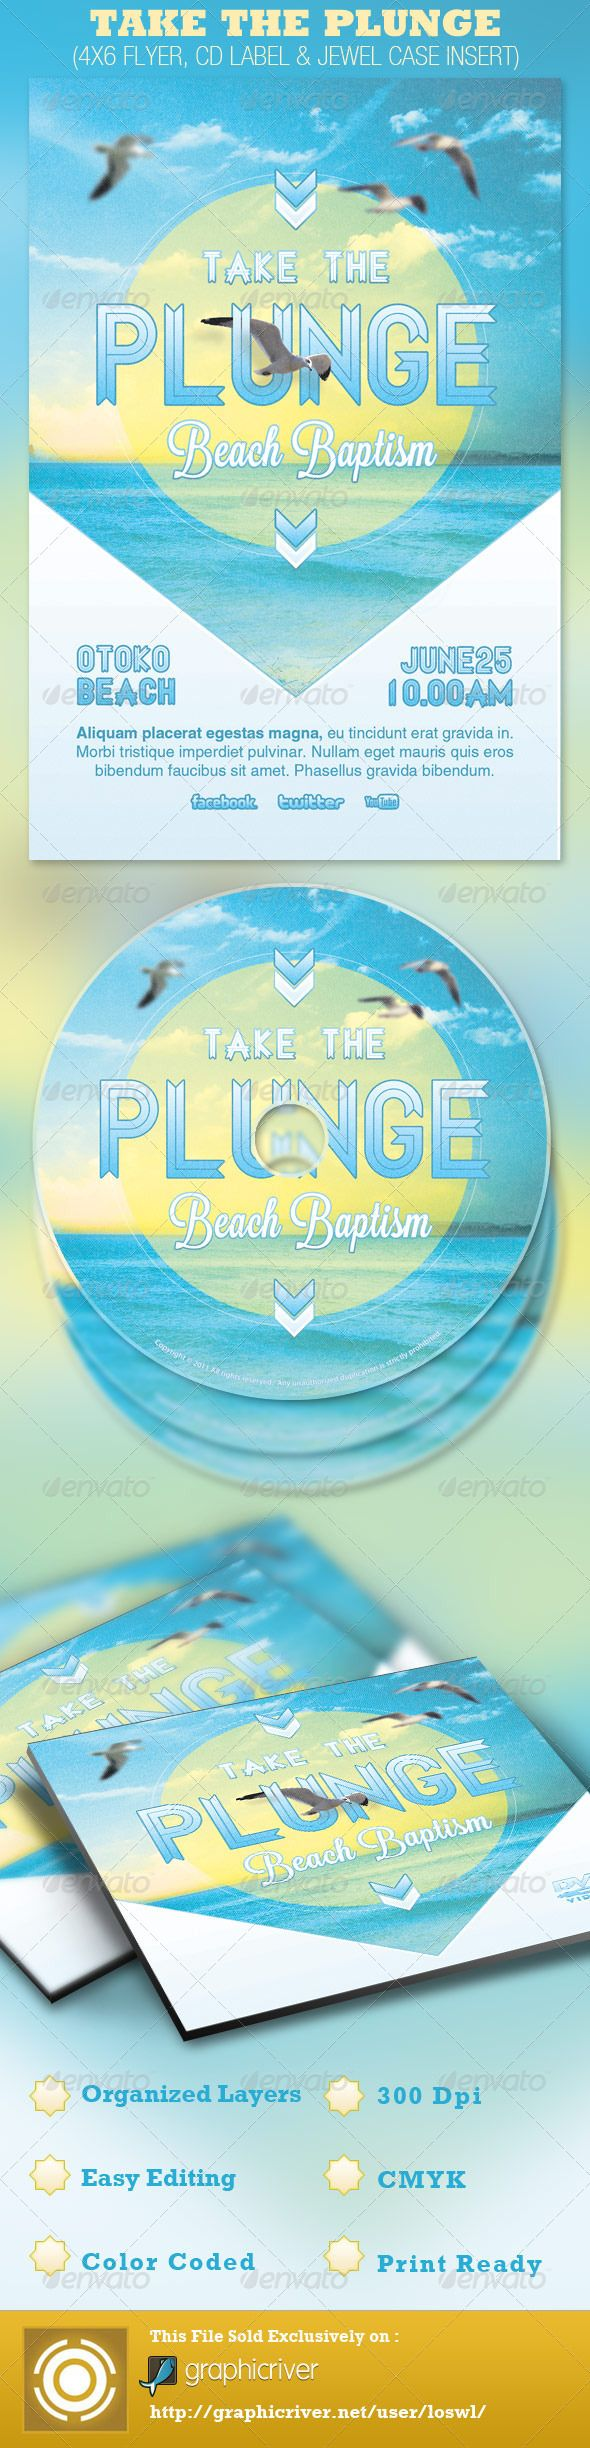 best images about church marketing flyer templates take the plunge church flyer and cd template